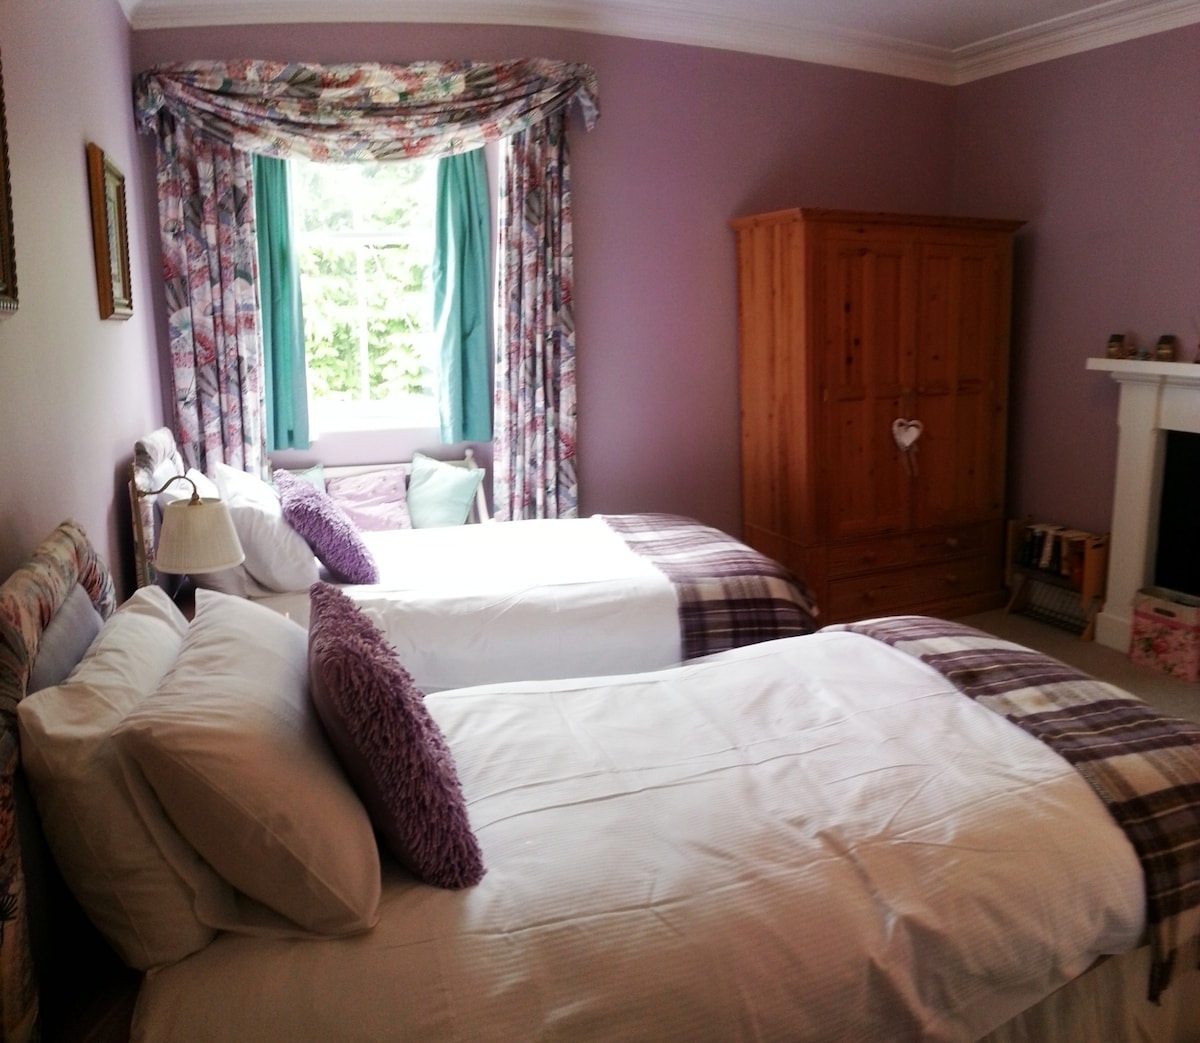 The Bona room is a twin bedded room with ensuite shower room.